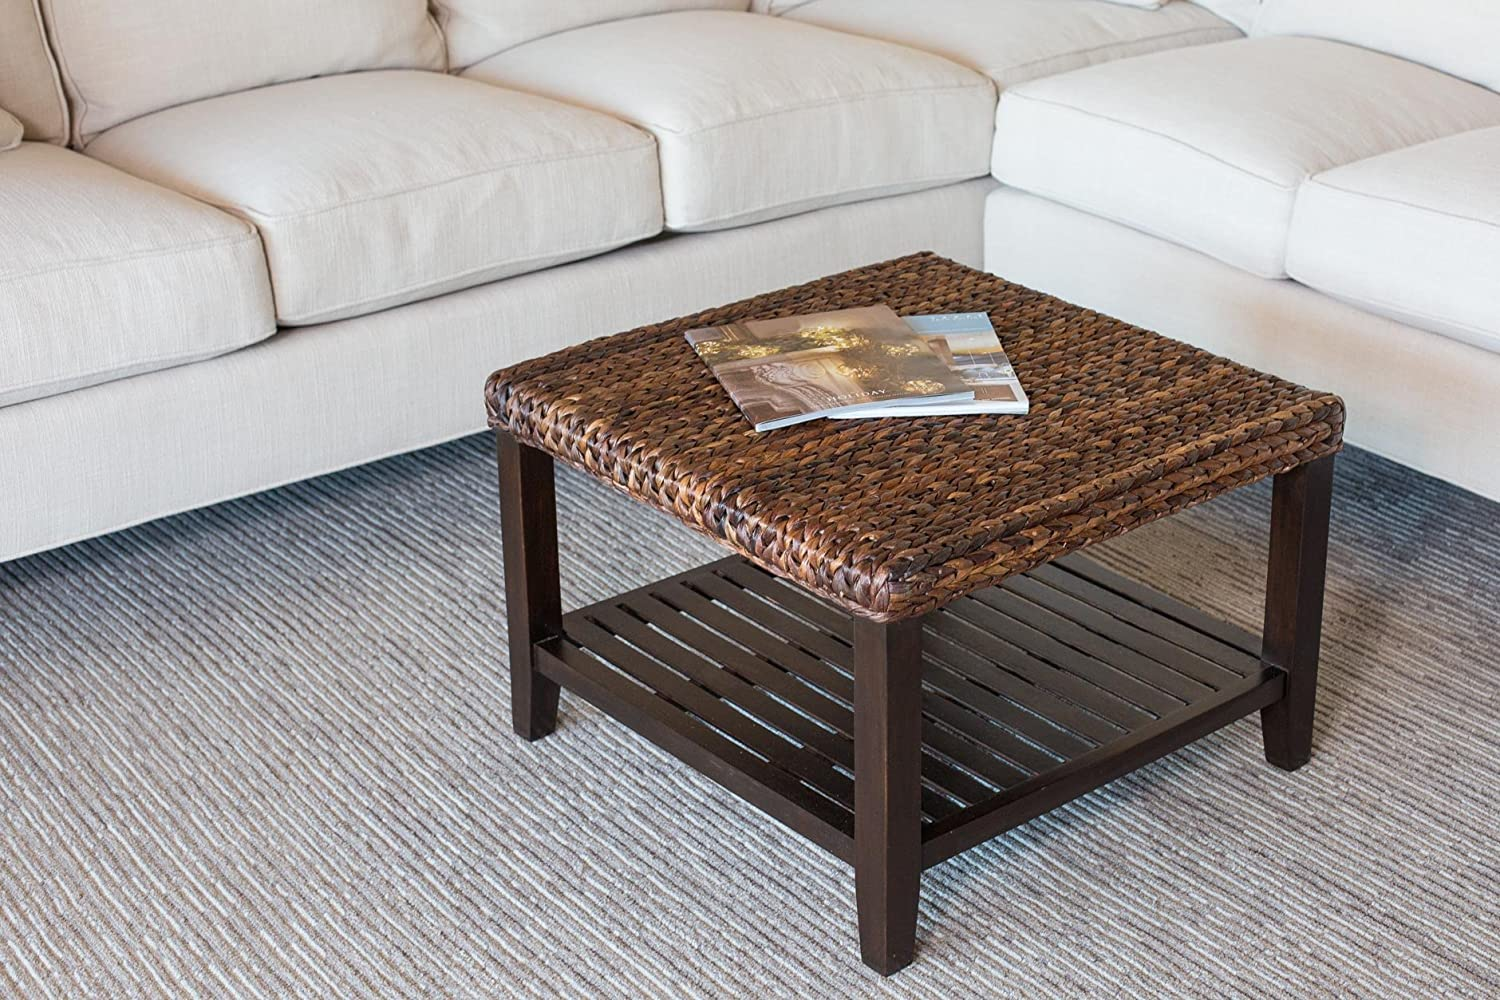 Amazoncom BirdRock Home Woven Seagrass Coffee Table Mahogany